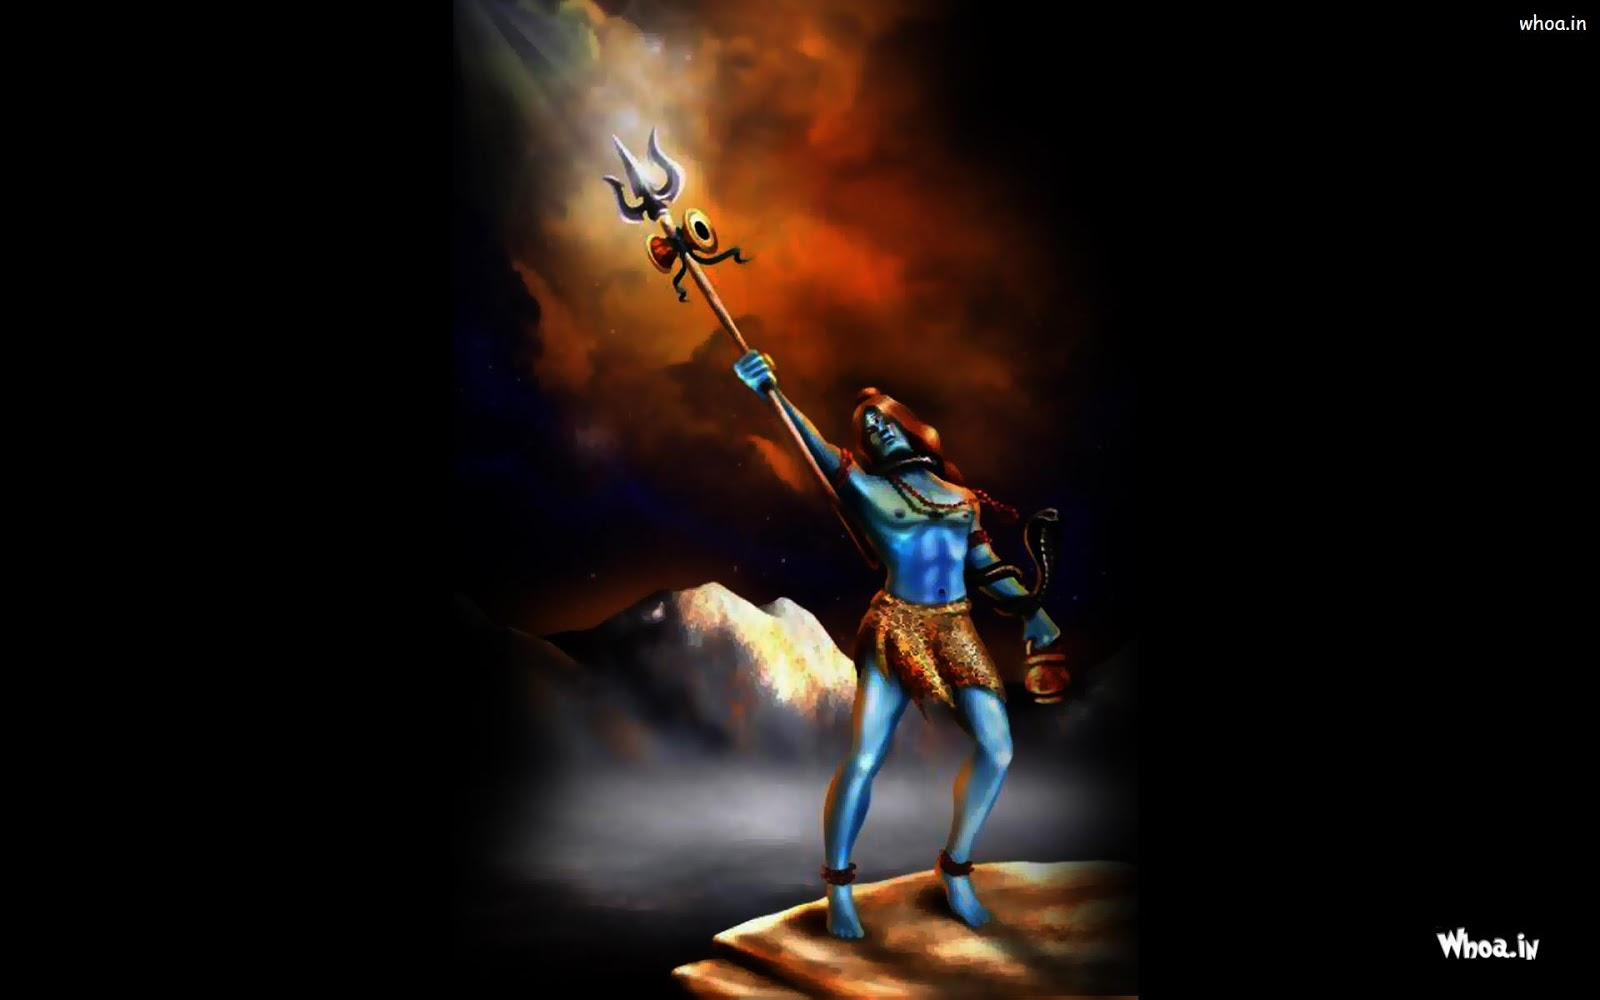 lord shiva angry hd - photo #21